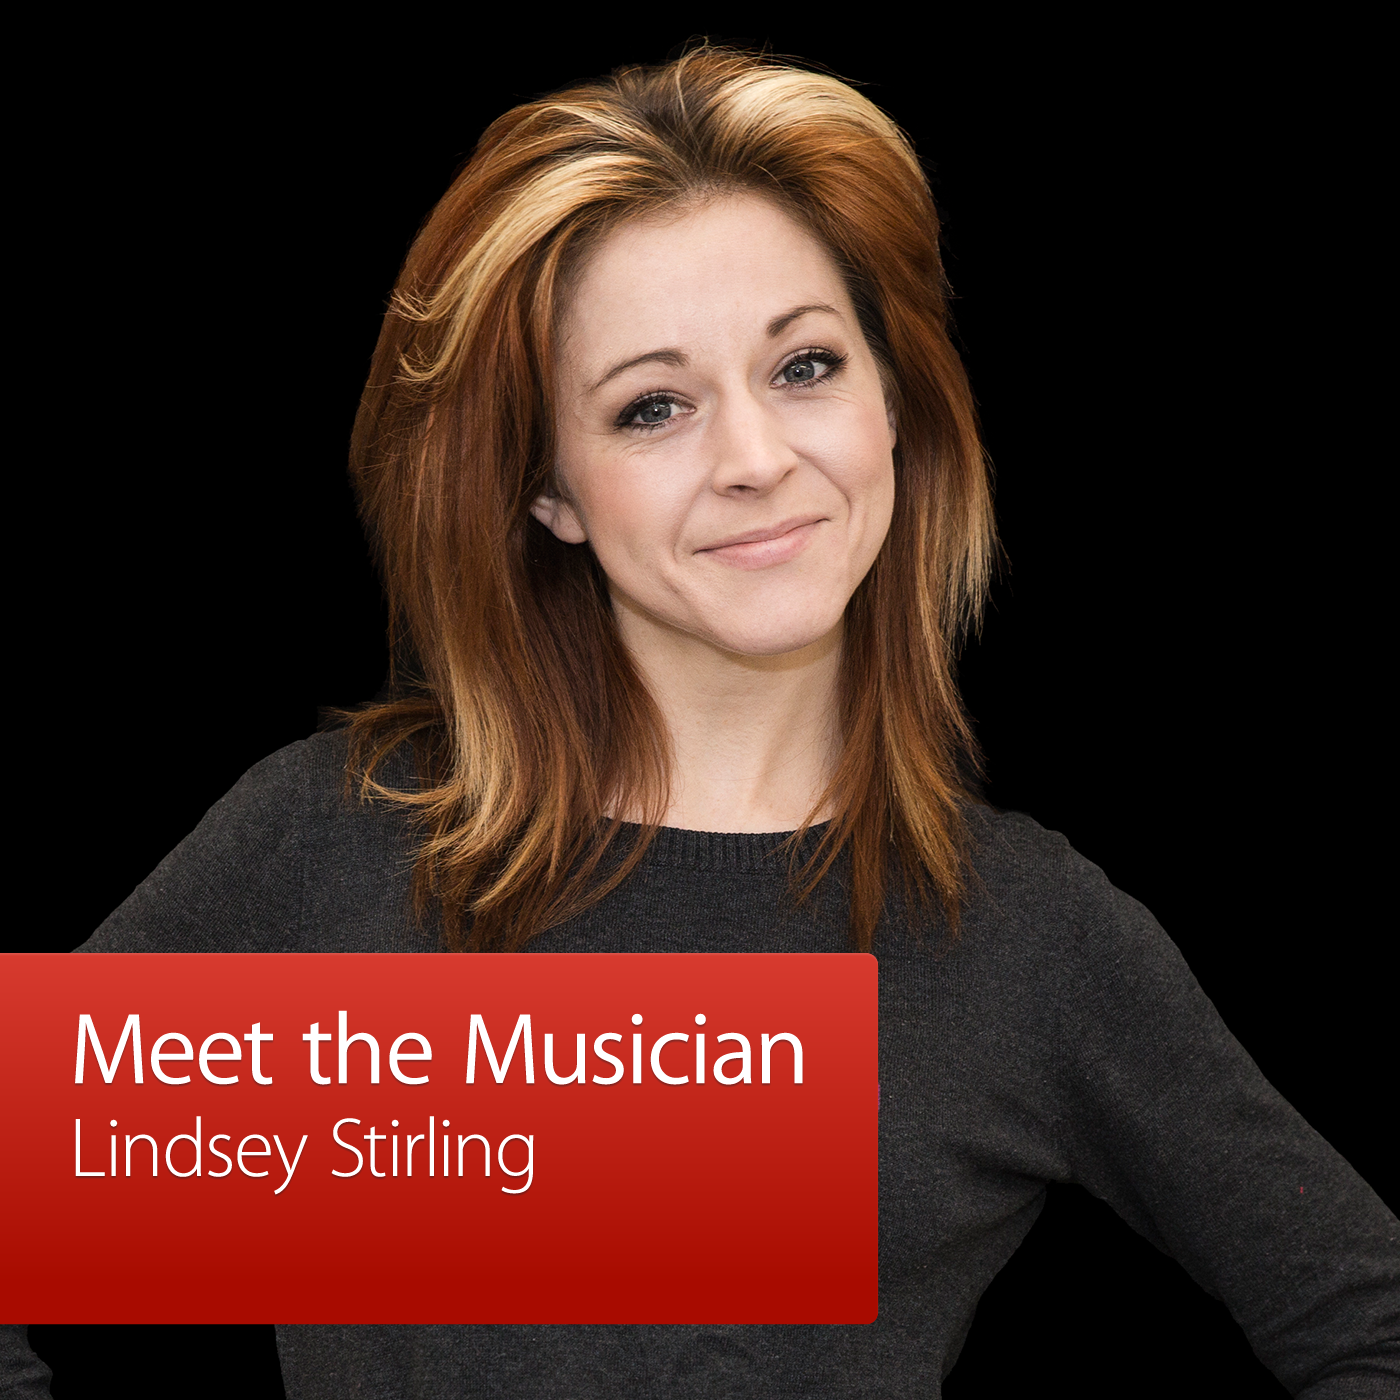 Lindsey Stirling: Meet the Musician